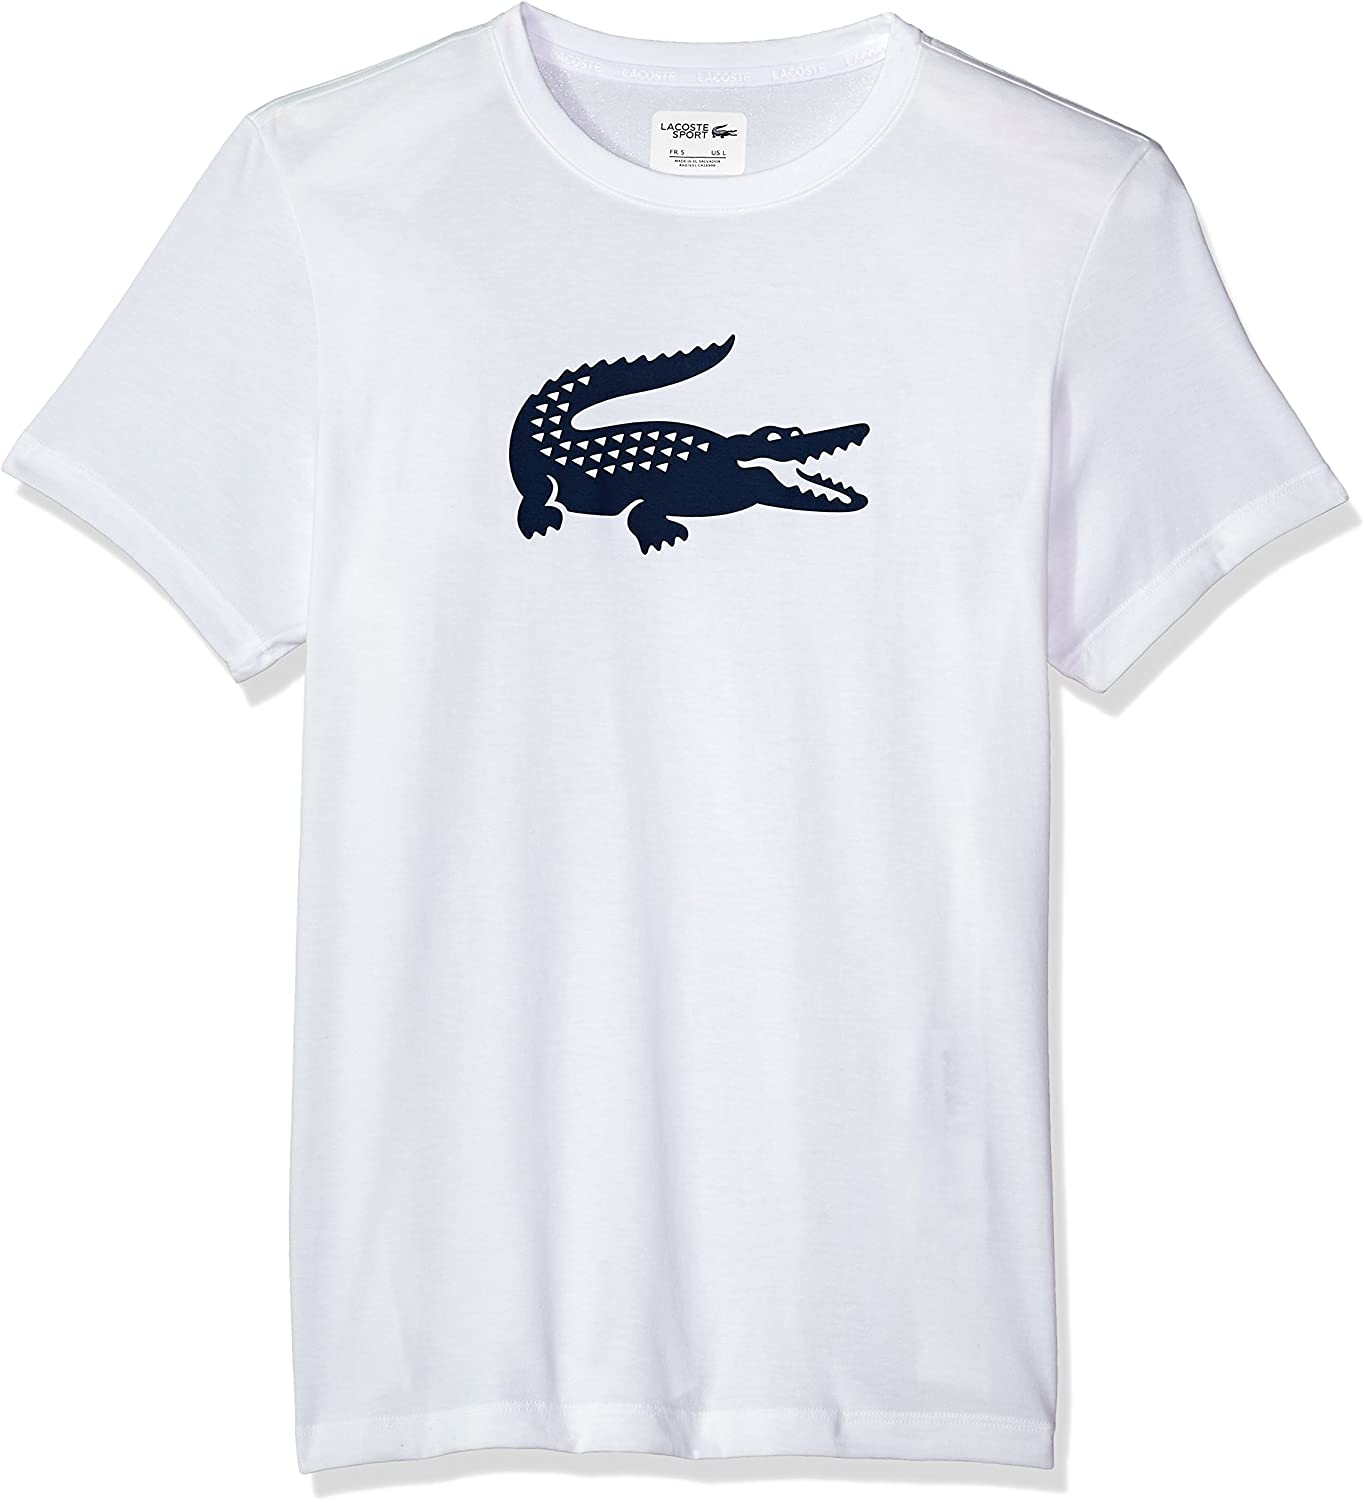 Lacoste Mens Sport Technical Jersey Tennis T-Shirt With Croc Graphic